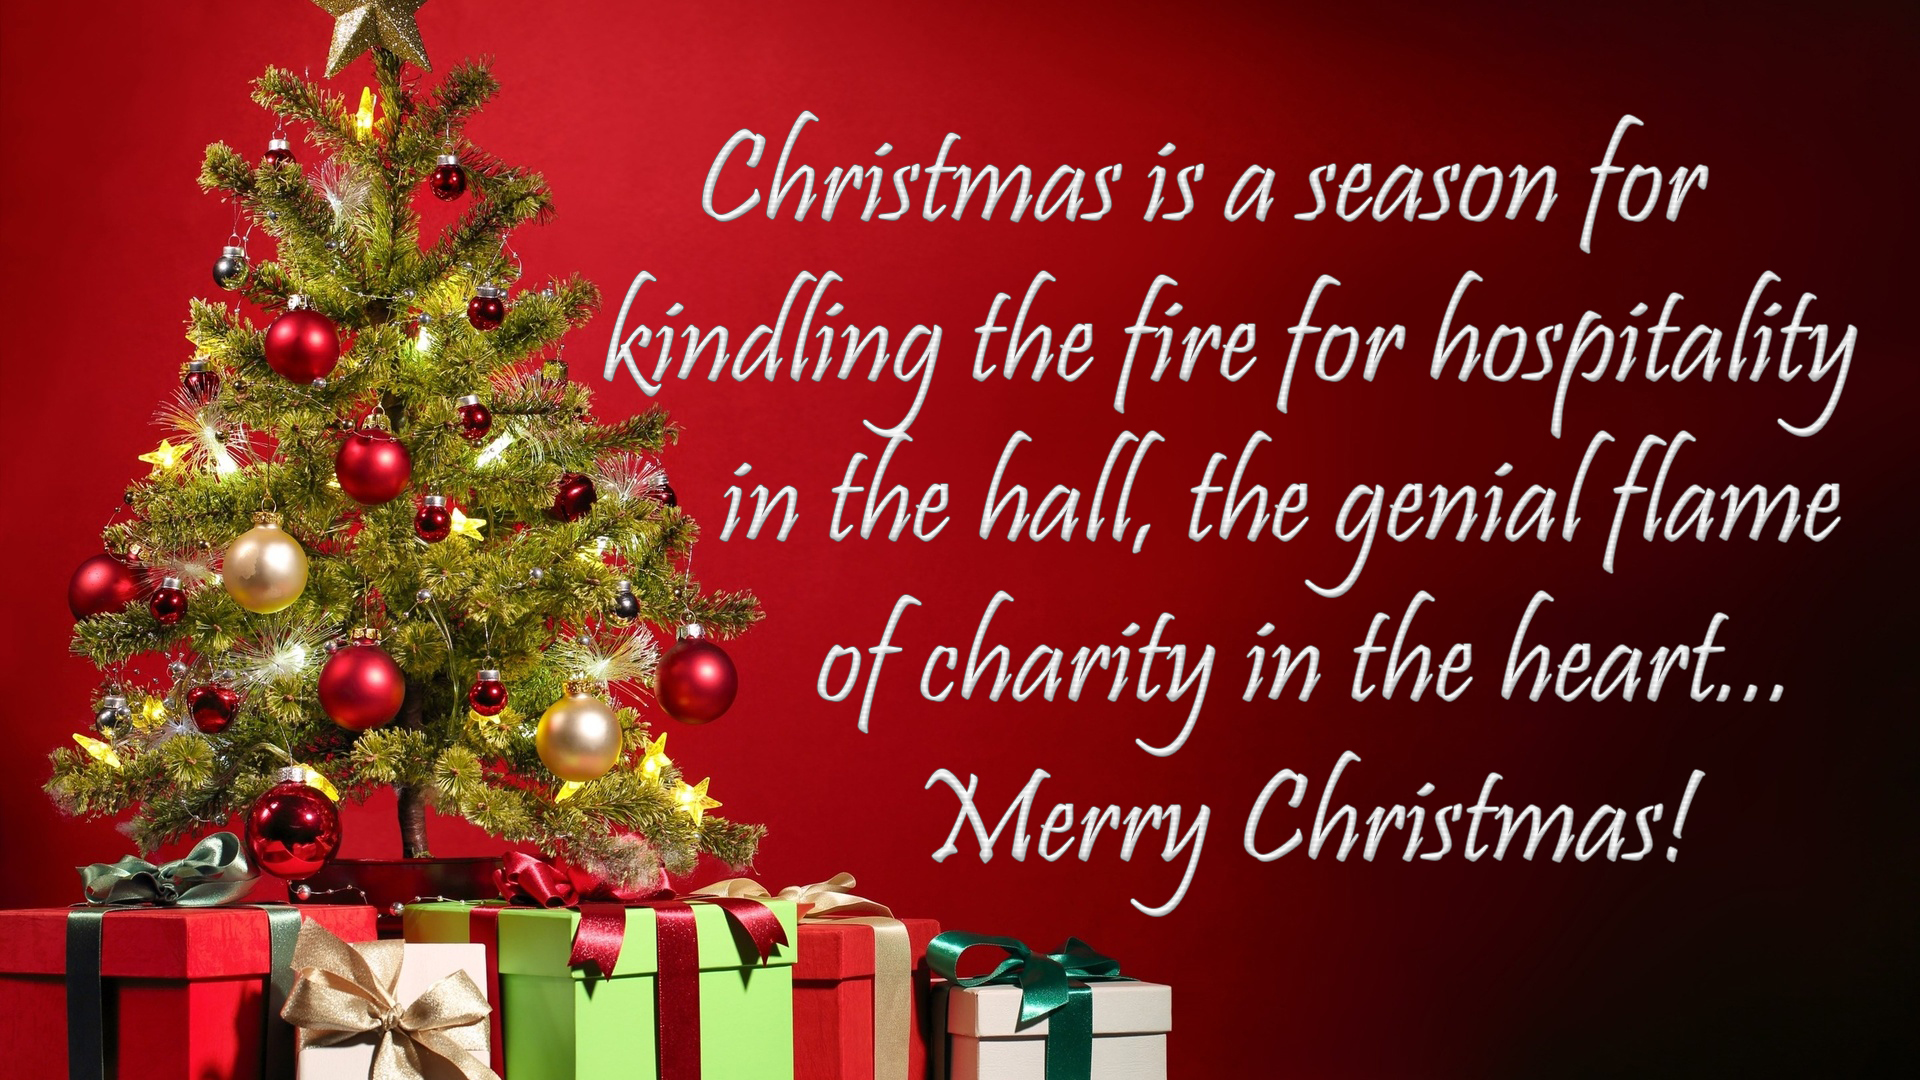 merry christmas quotes hd images  christmas greeting cards